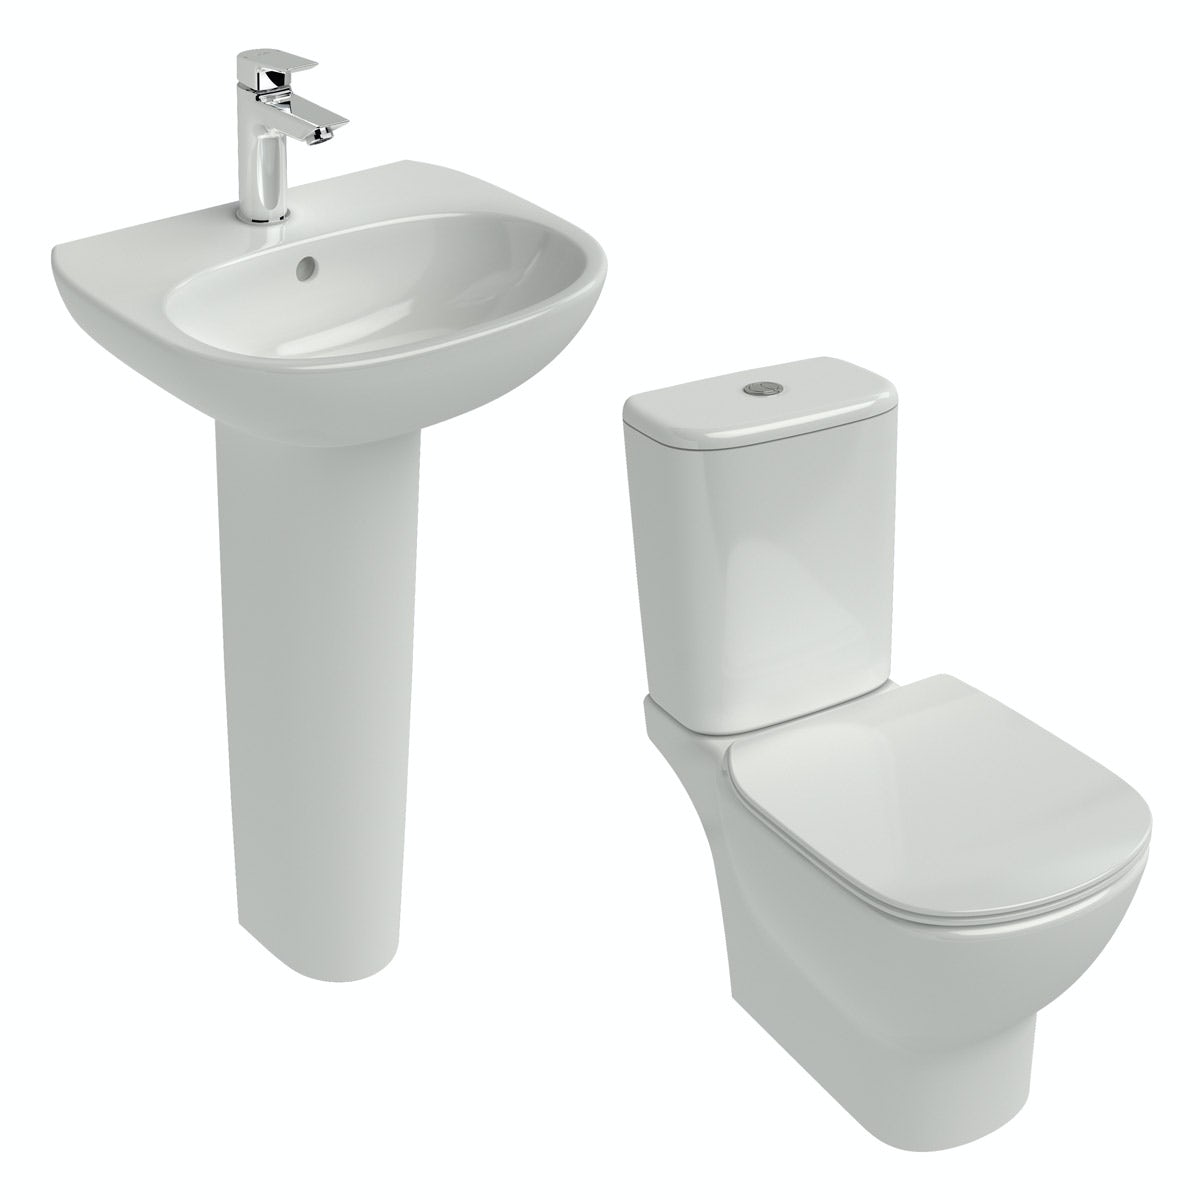 Ideal Standard Tesi cloakroom suite with full pedestal basin 450mm